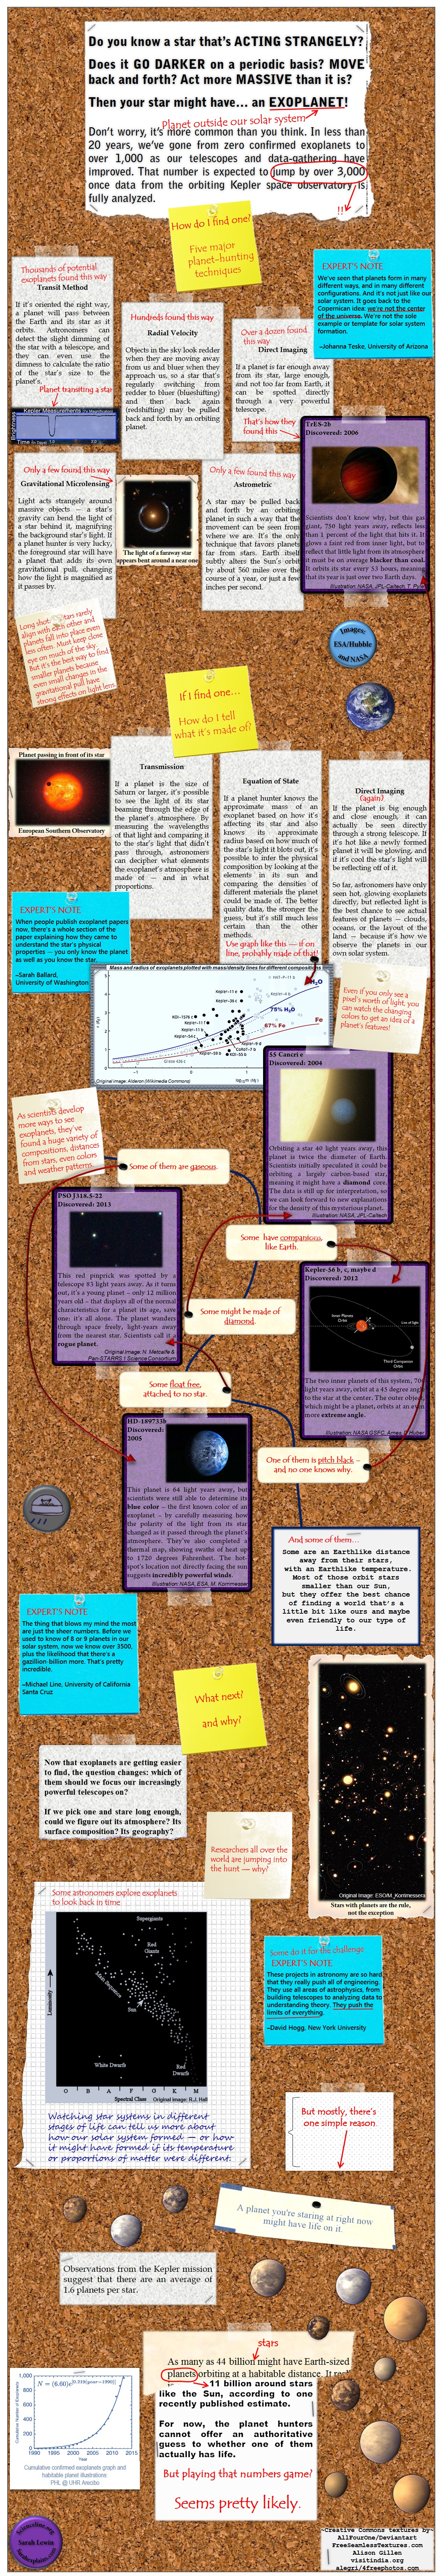 An infographic describing the different ways of finding and categorizing planets outside our solar system.